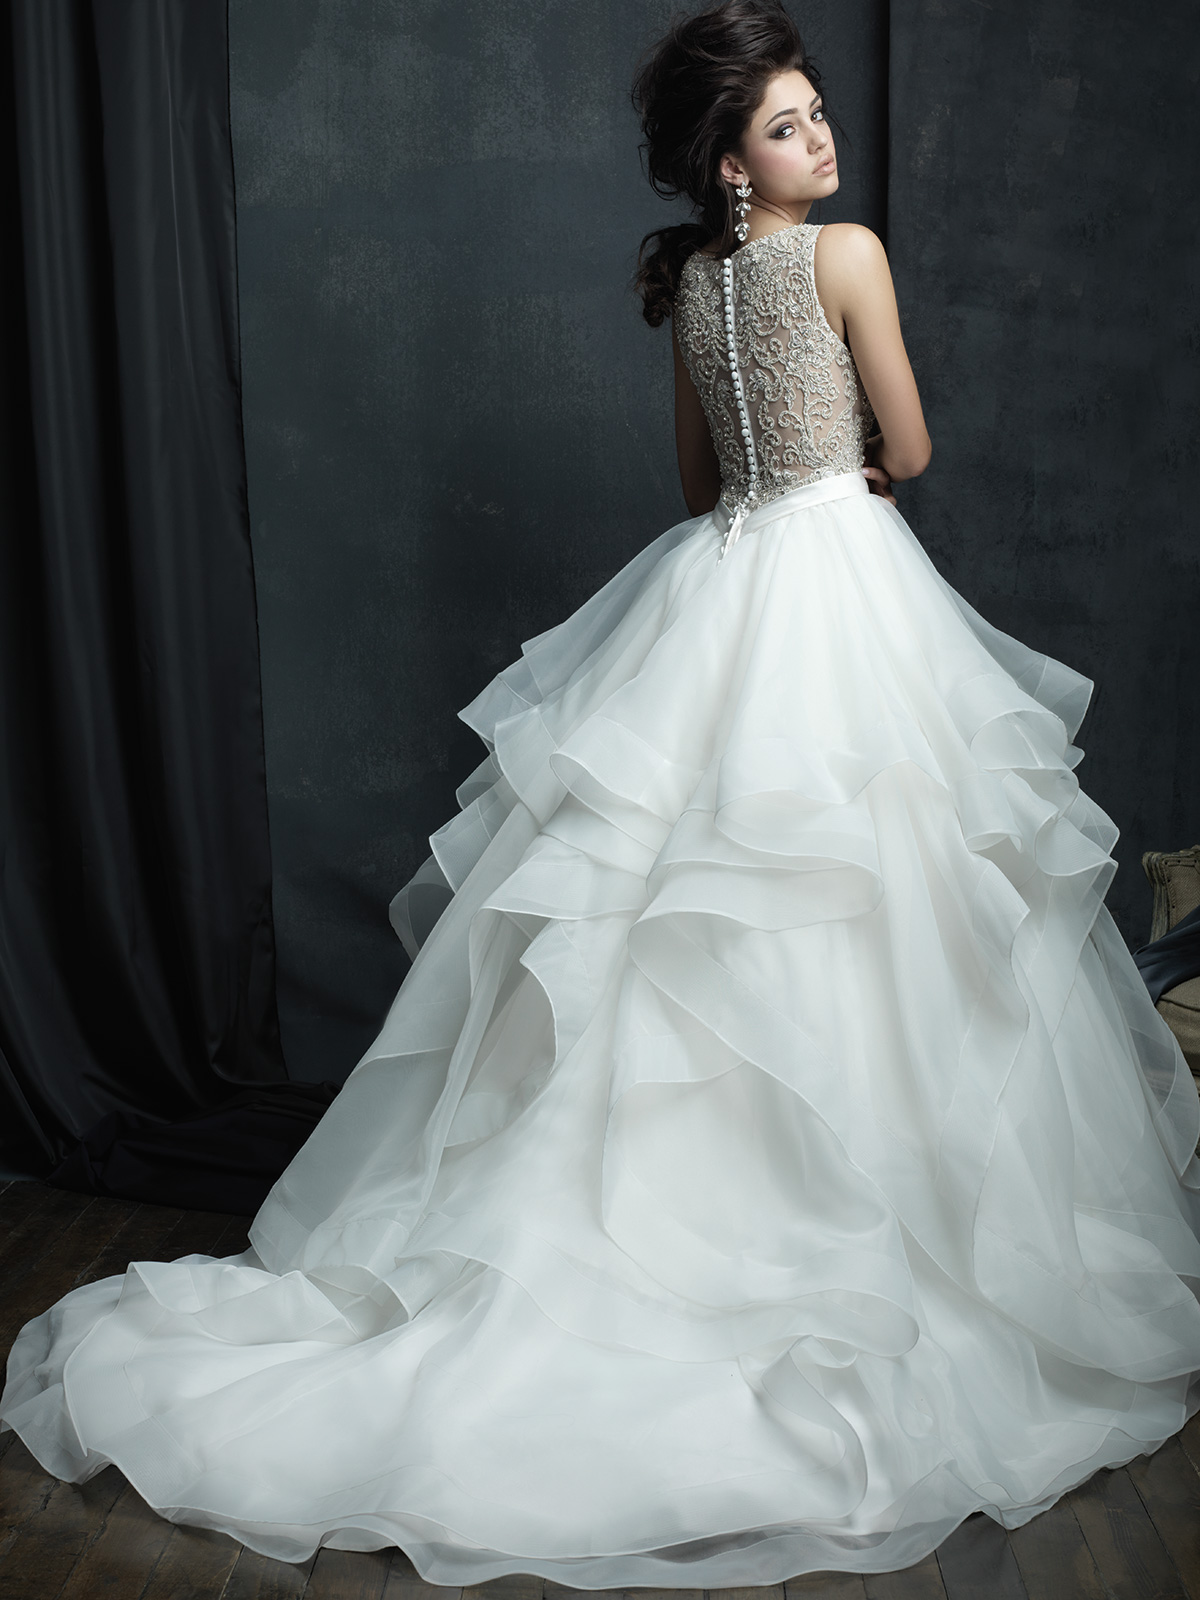 Allure Bridals Couture C380 Ball Gown Wedding Dress